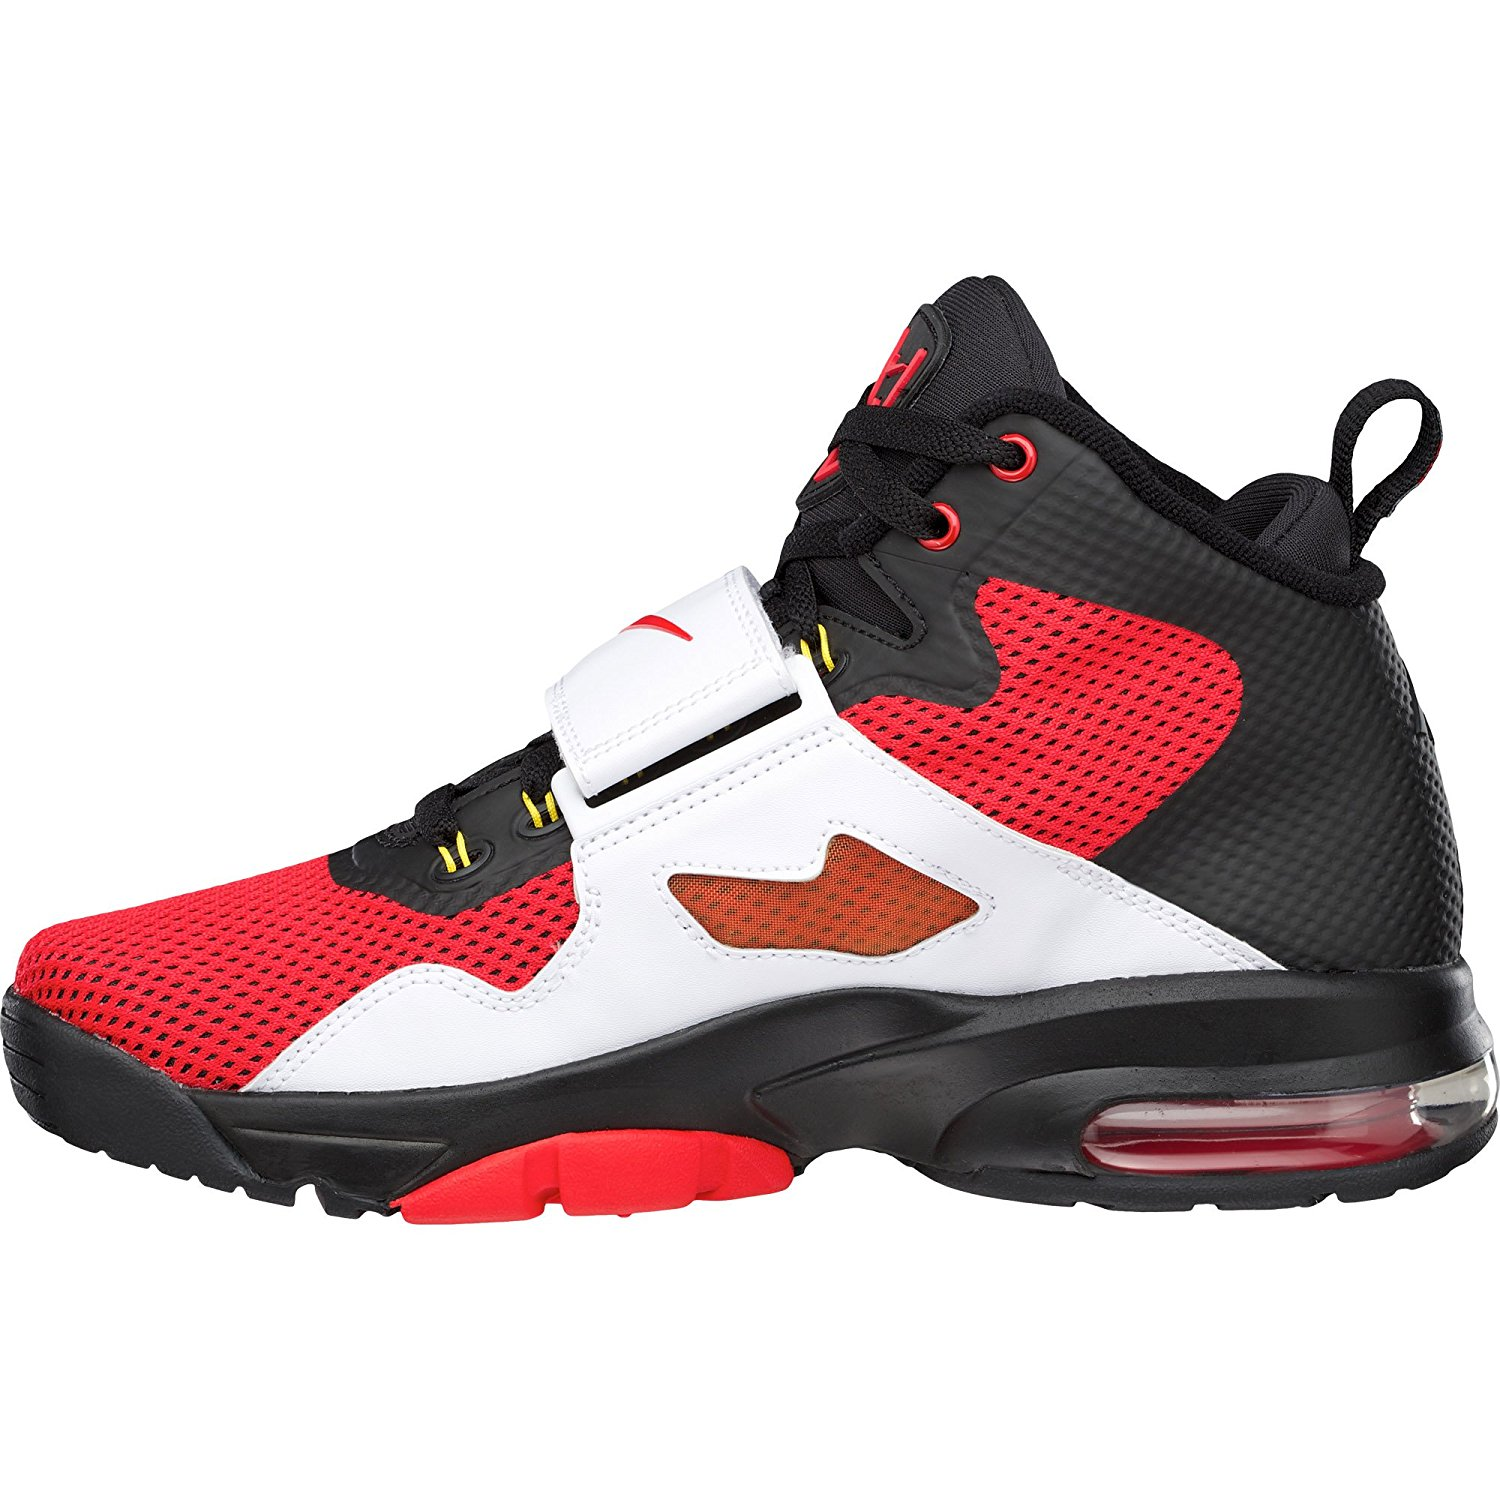 b1f0e8ba0e Get Quotations · Nike Air Diamond Turf Vi Mens Style: 725155-001 Size: 10 M  US